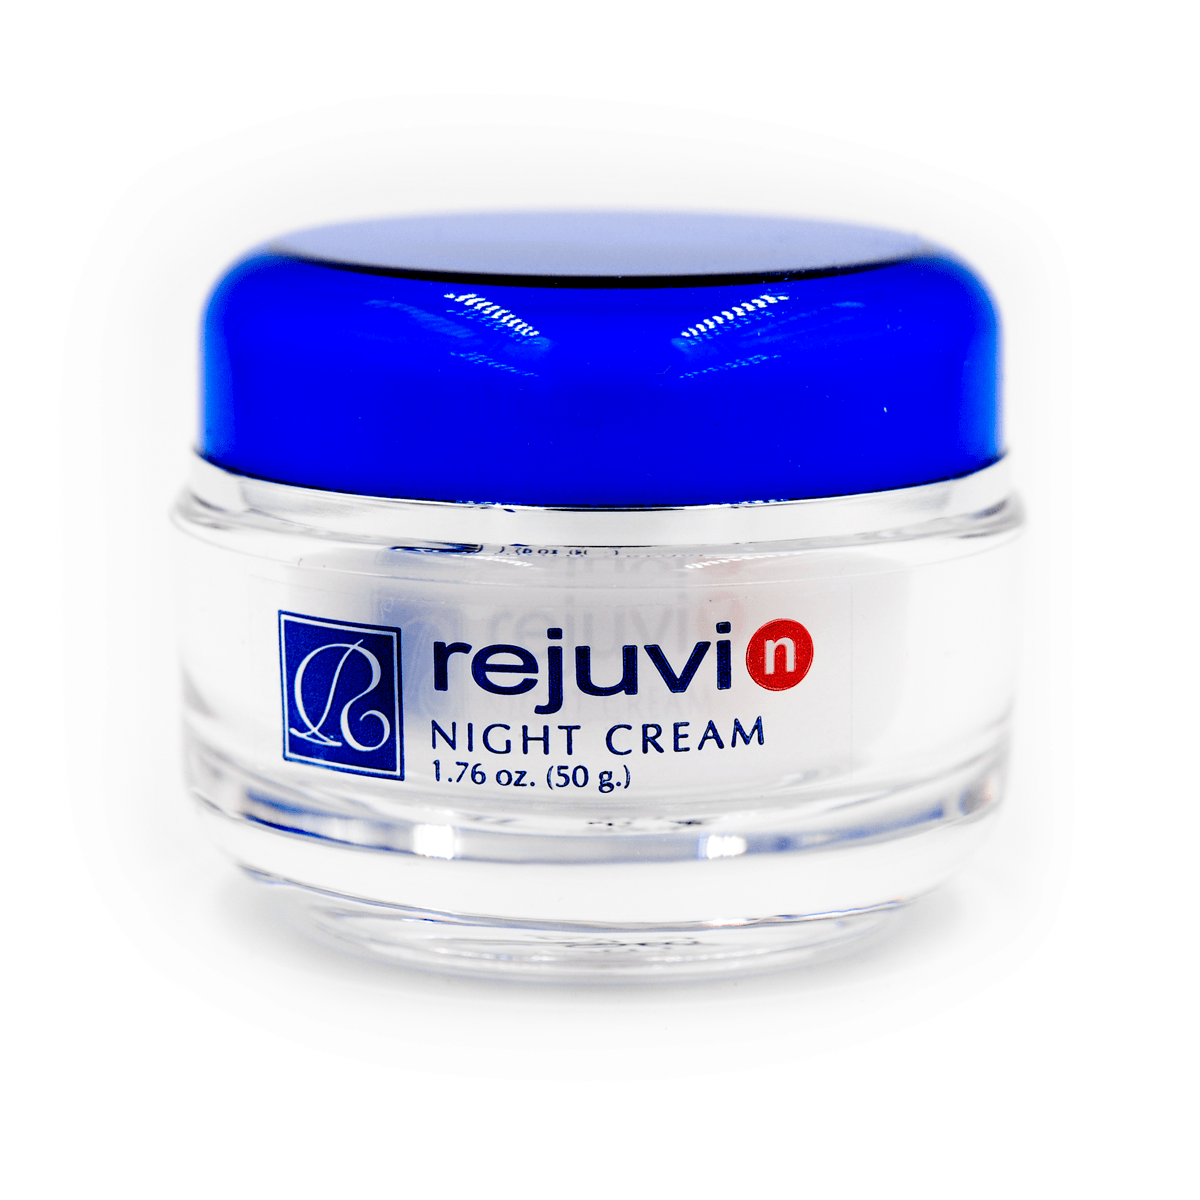 n Night Cream (Normal Skin) 1.76 oz/50g